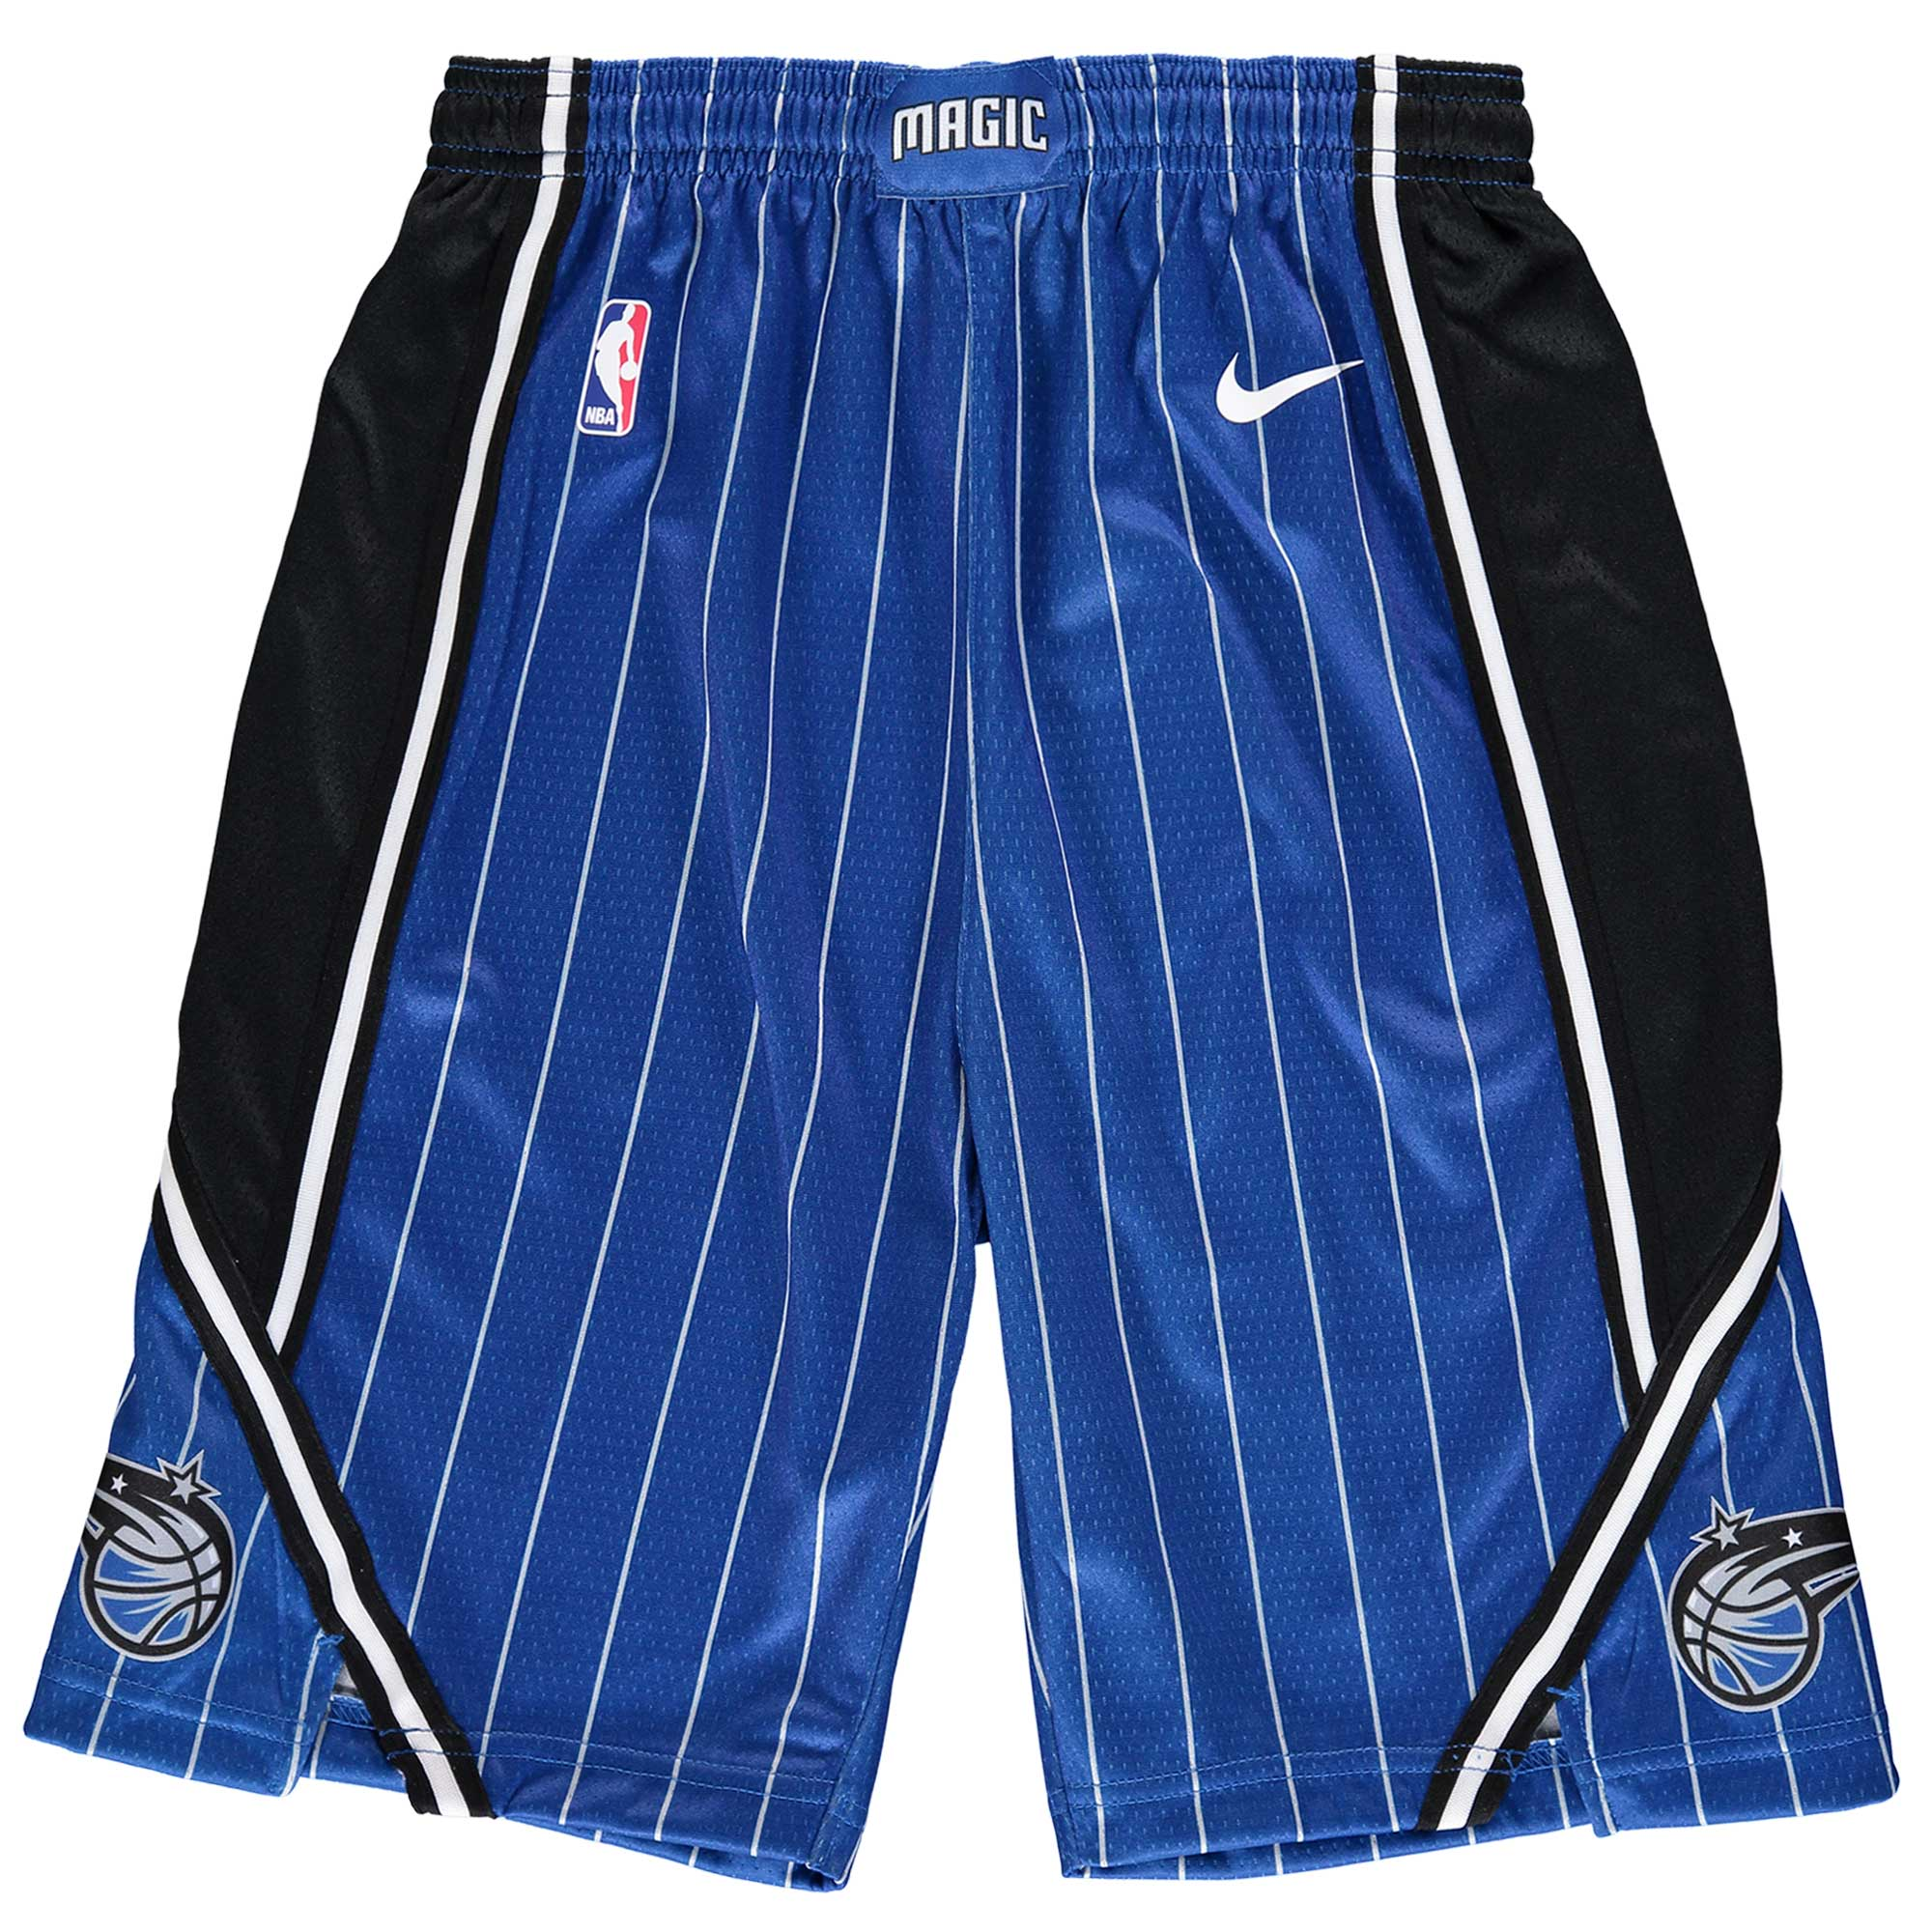 Orlando Magic Nike Youth Swingman Icon Performance Shorts - Blue/Black